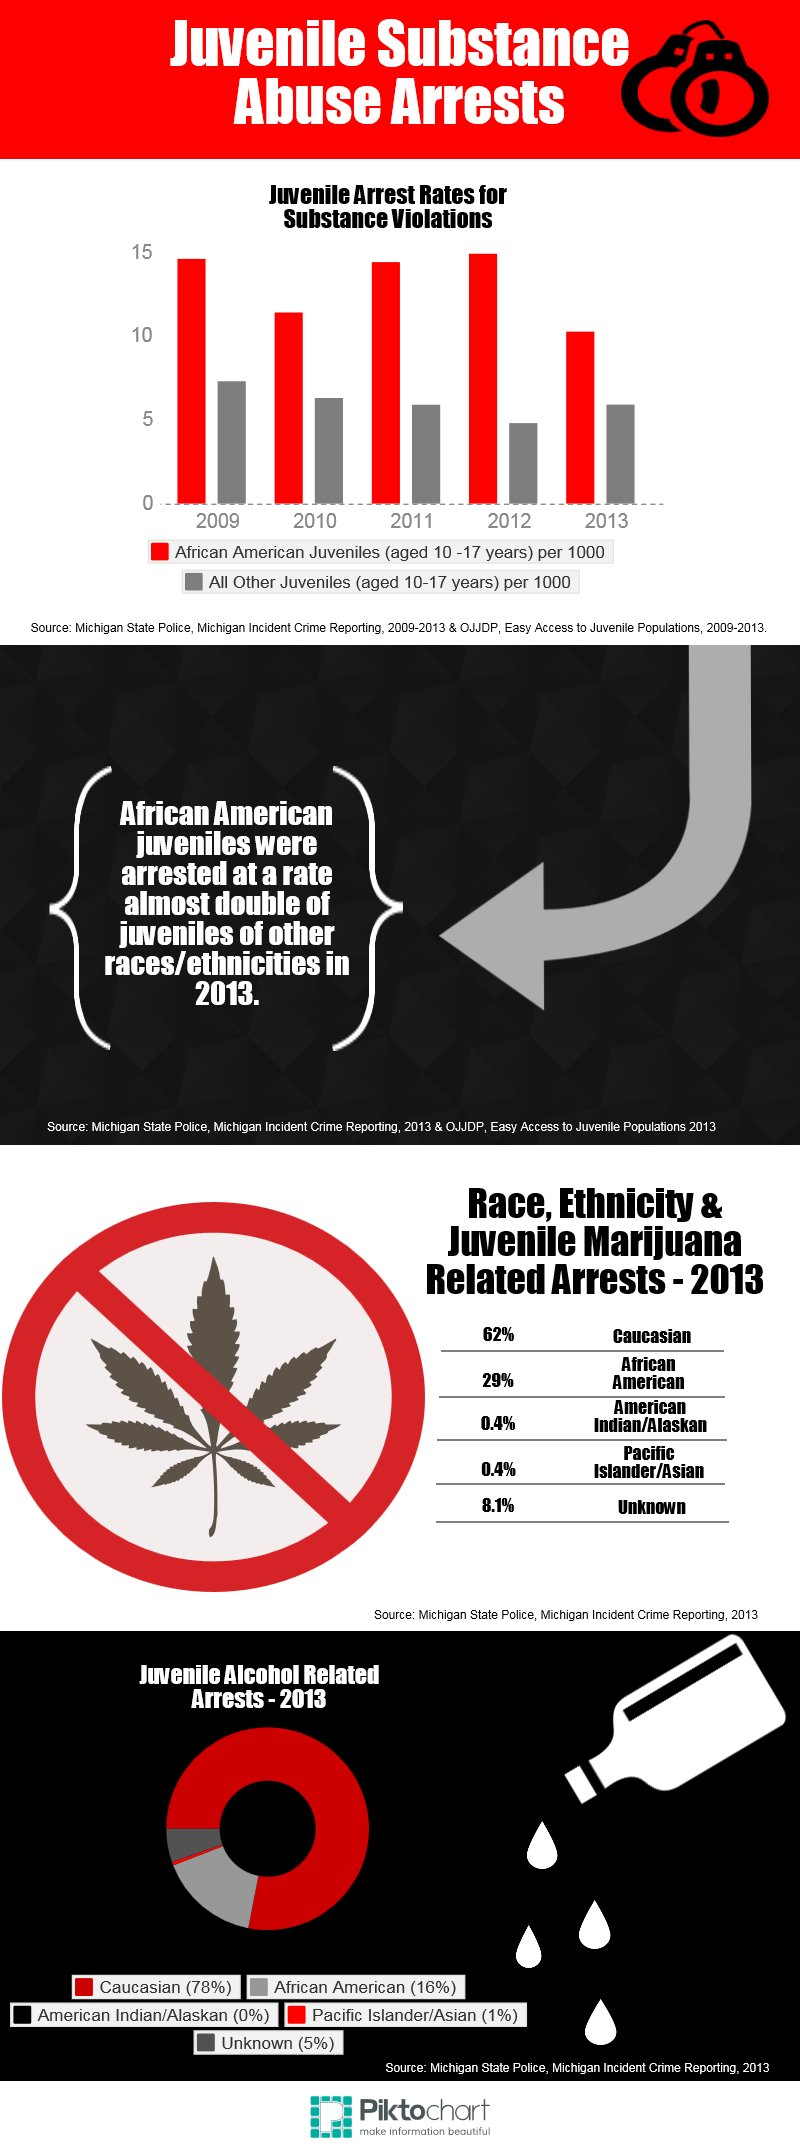 juvenile substance use arrests - infographic